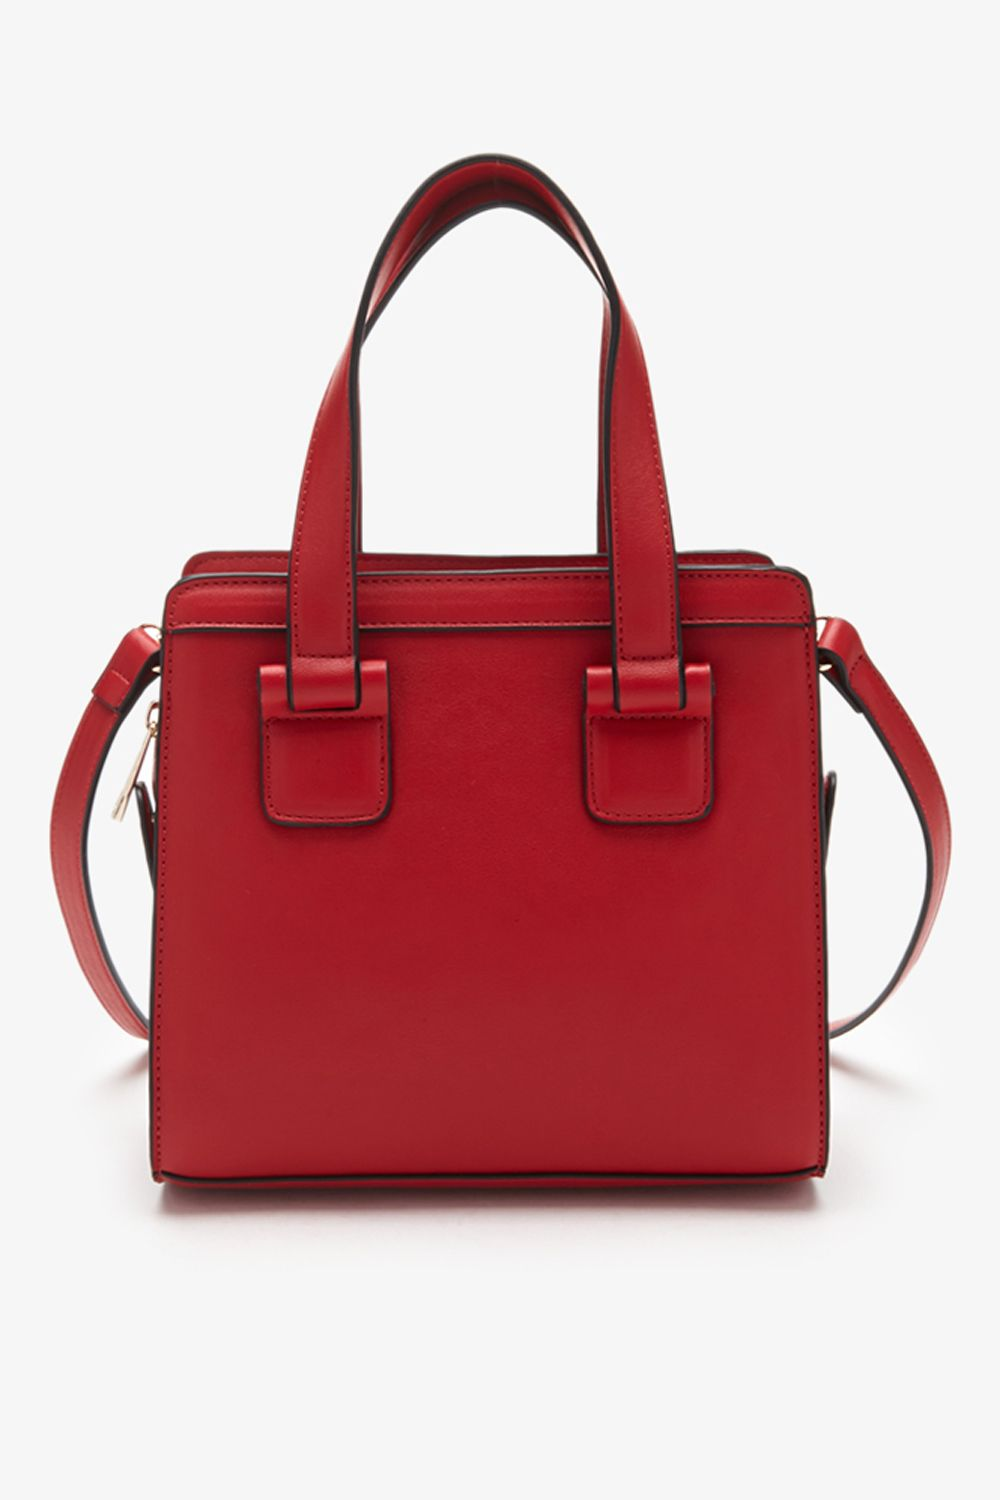 Long Strap Faux Leather Satchel, $27.90; Forever 21.